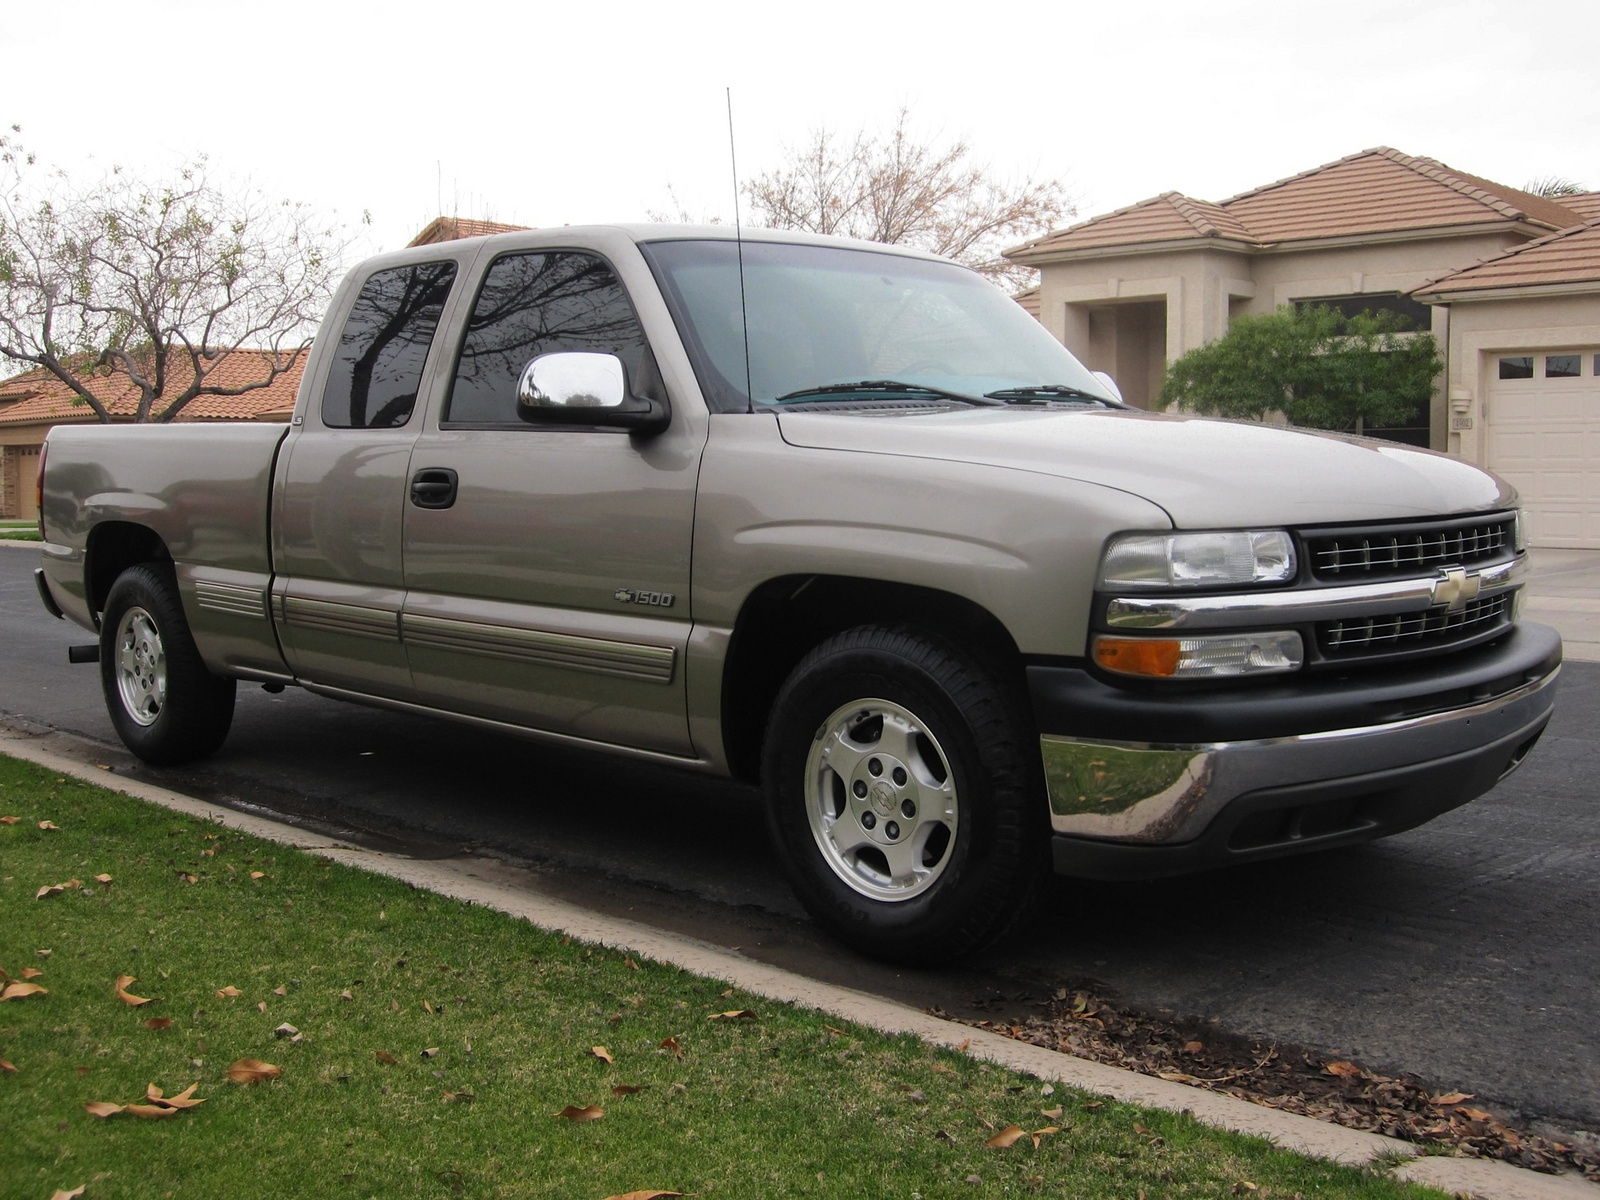 2001 chevy silverado 1500 extended cab autos post. Black Bedroom Furniture Sets. Home Design Ideas